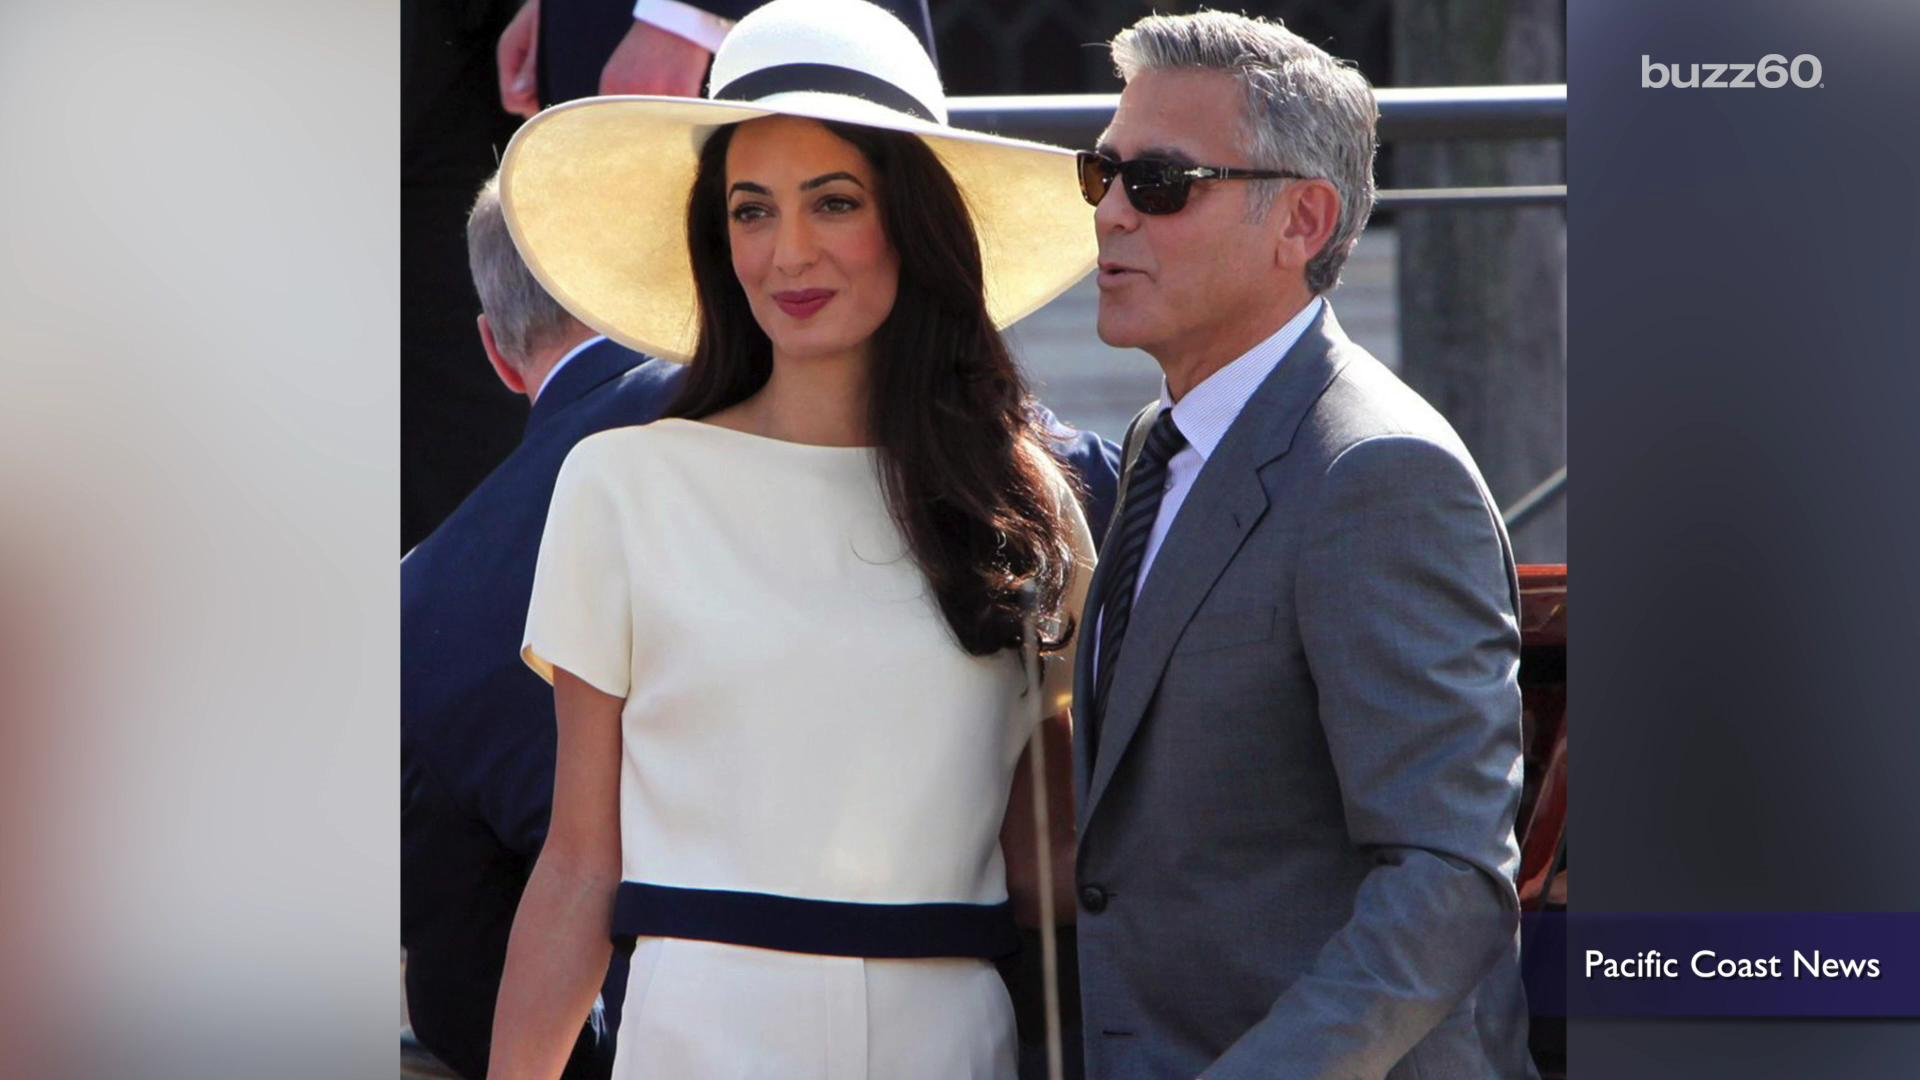 George and Amal Clooney celebrate 1st anniversary